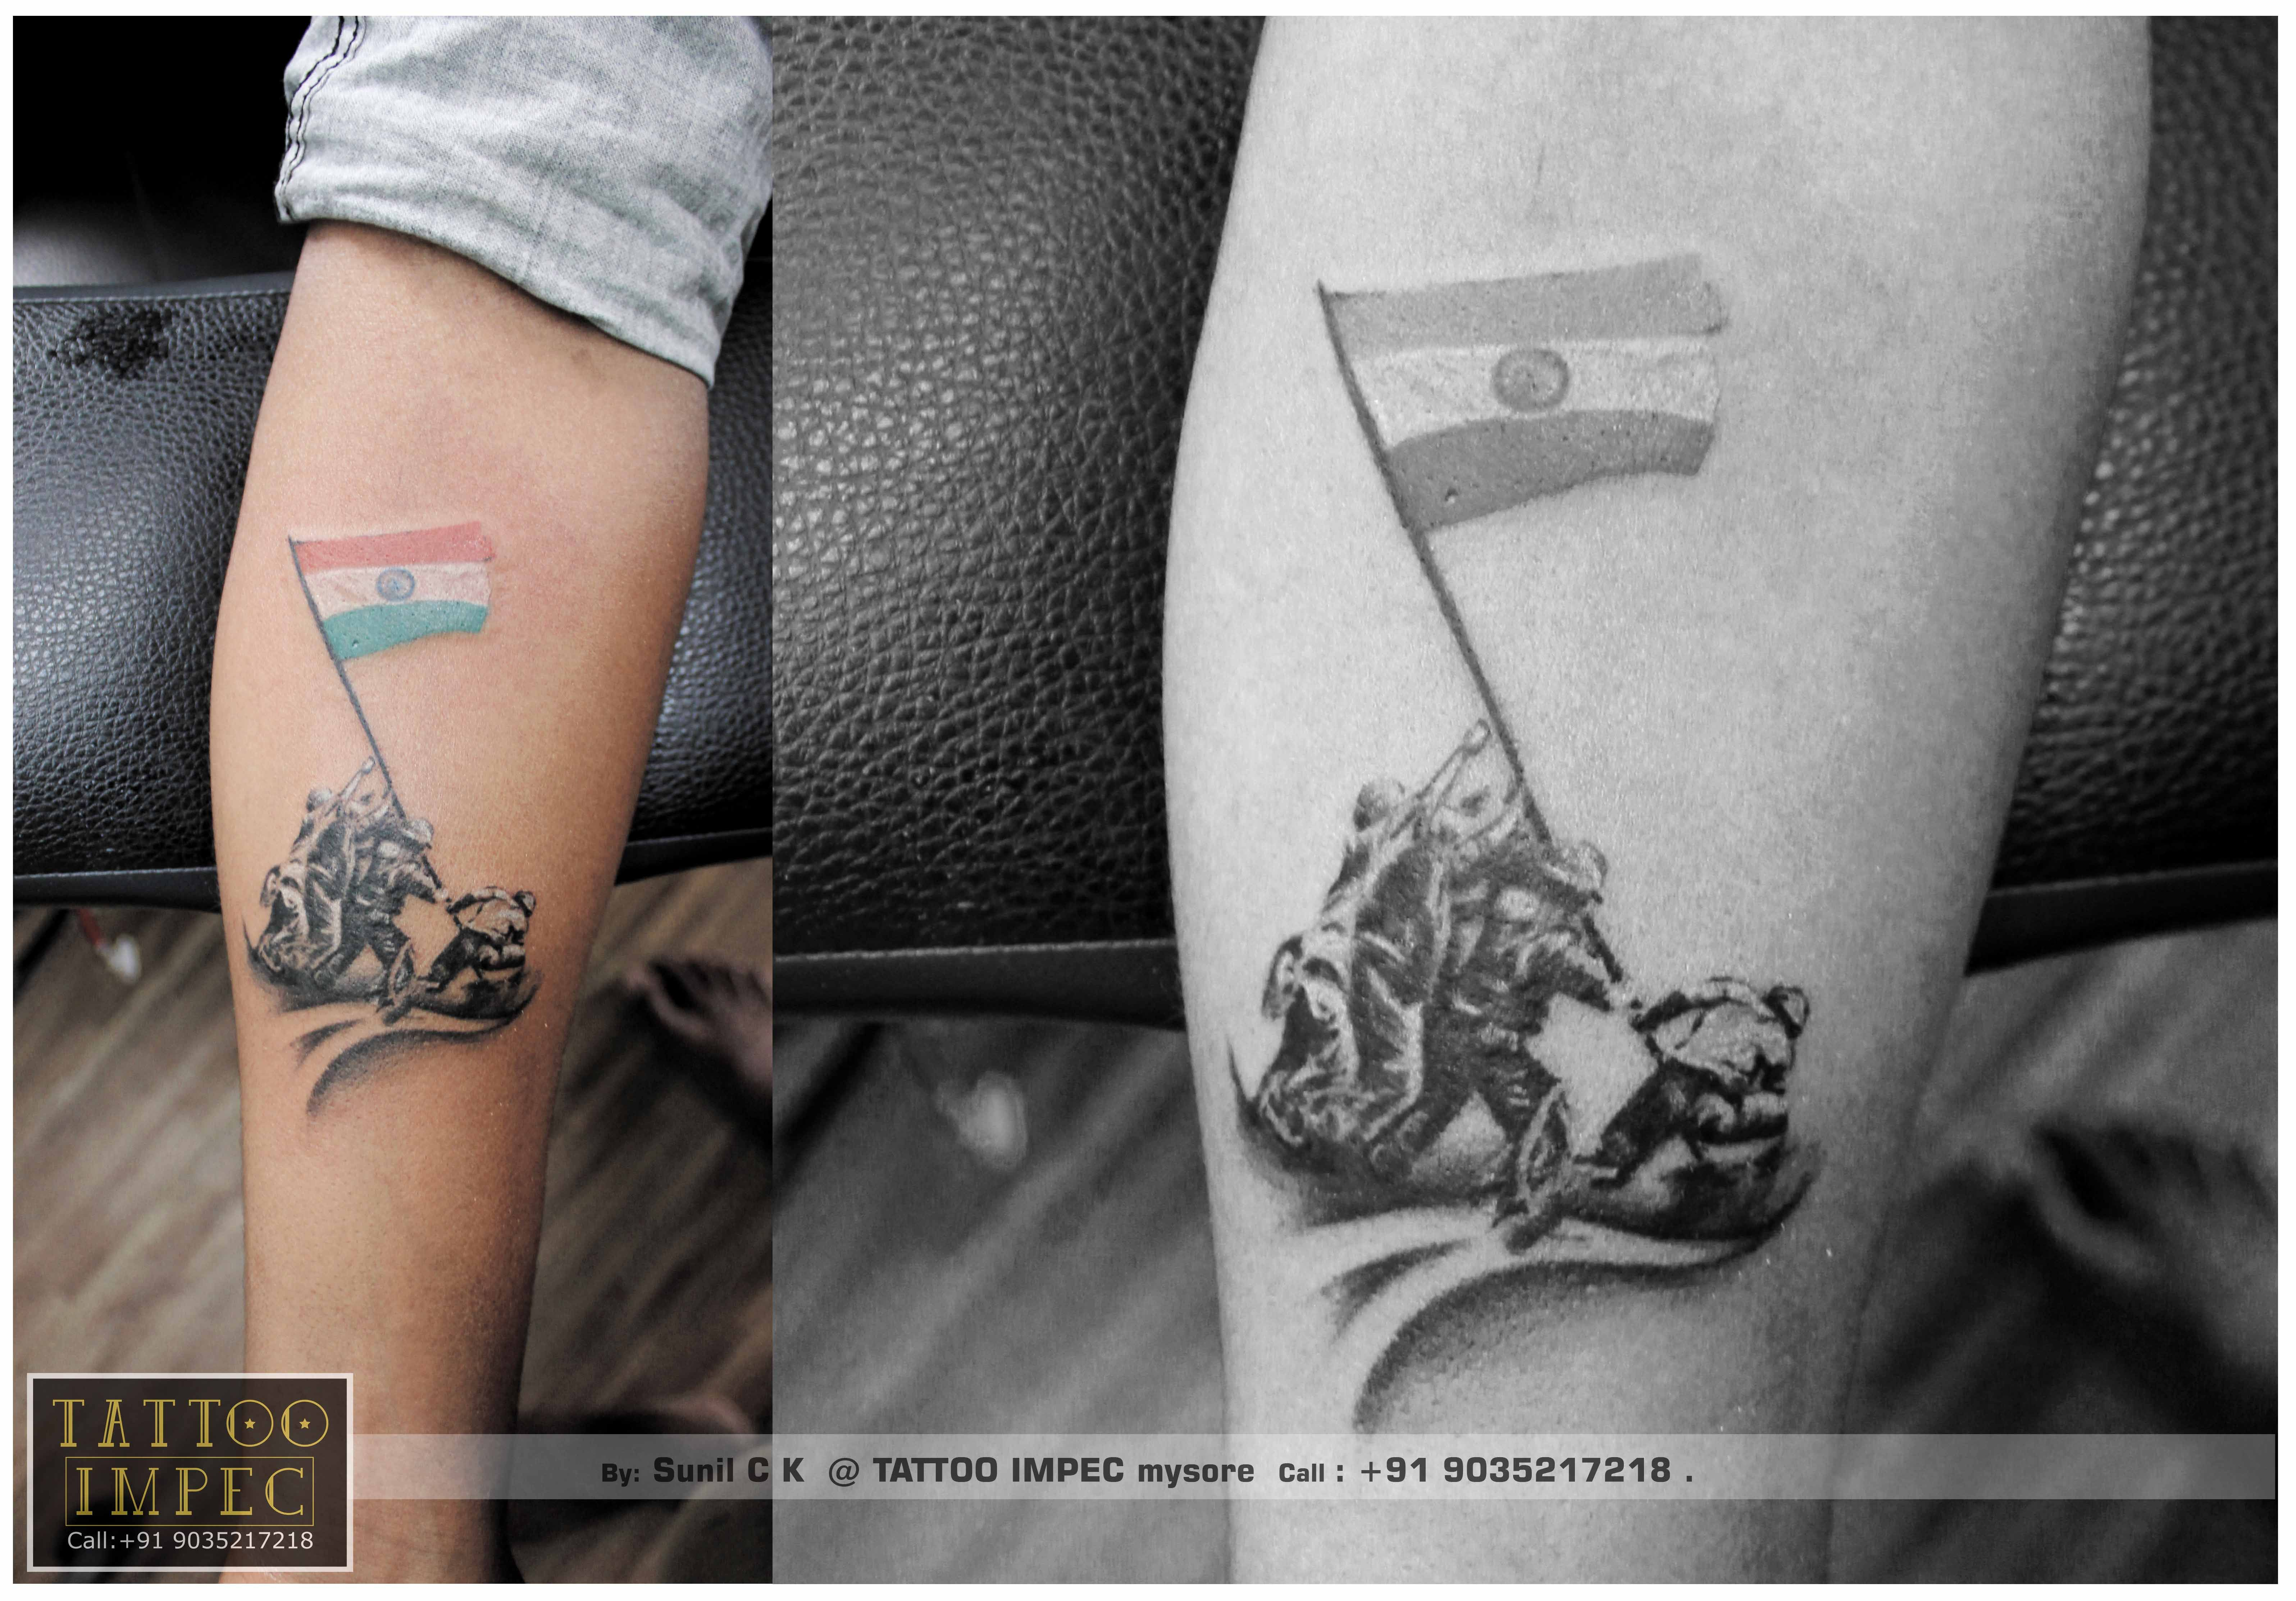 f7c41ff2c <3 #Indian army holding Indian national flag #tattoo #Indian army  soldiers